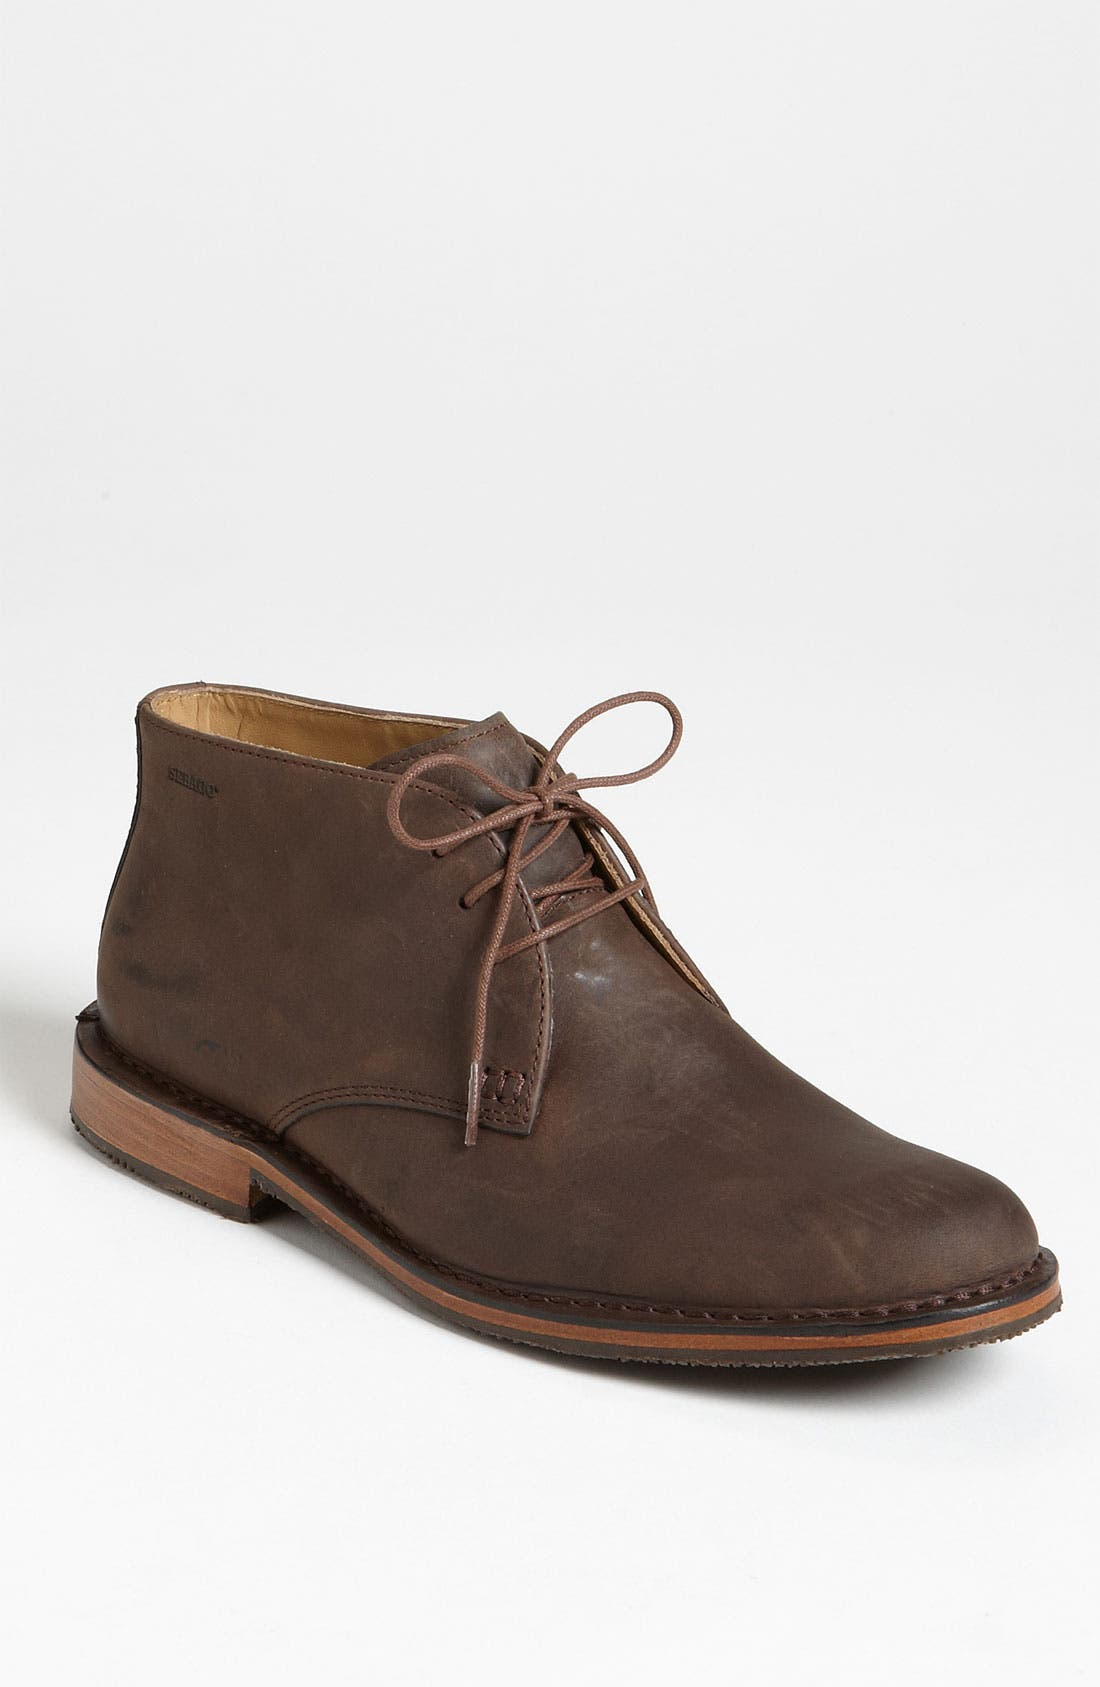 Alternate Image 1 Selected - Sebago 'Tremont' Boot (Online Only)